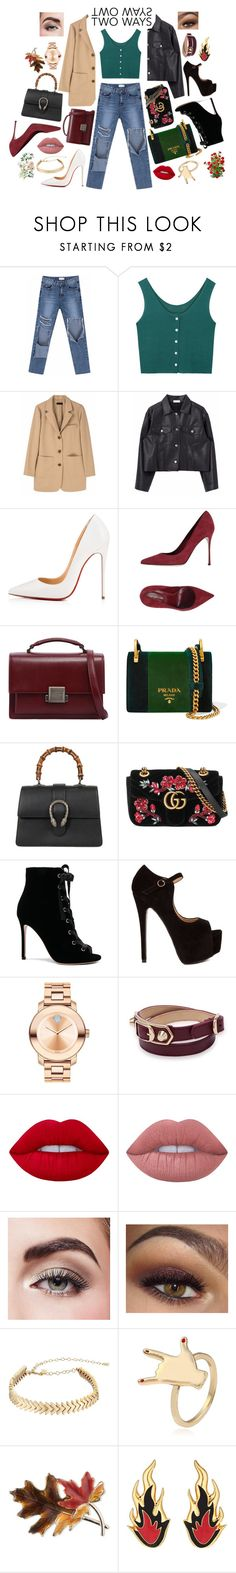 """""""Two Ways"""" by mixxmix ❤ liked on Polyvore featuring Christian Louboutin, Sergio Rossi, Yves Saint Laurent, Prada, Gucci, Gianvito Rossi, Movado, Balenciaga, Lime Crime and Avon"""